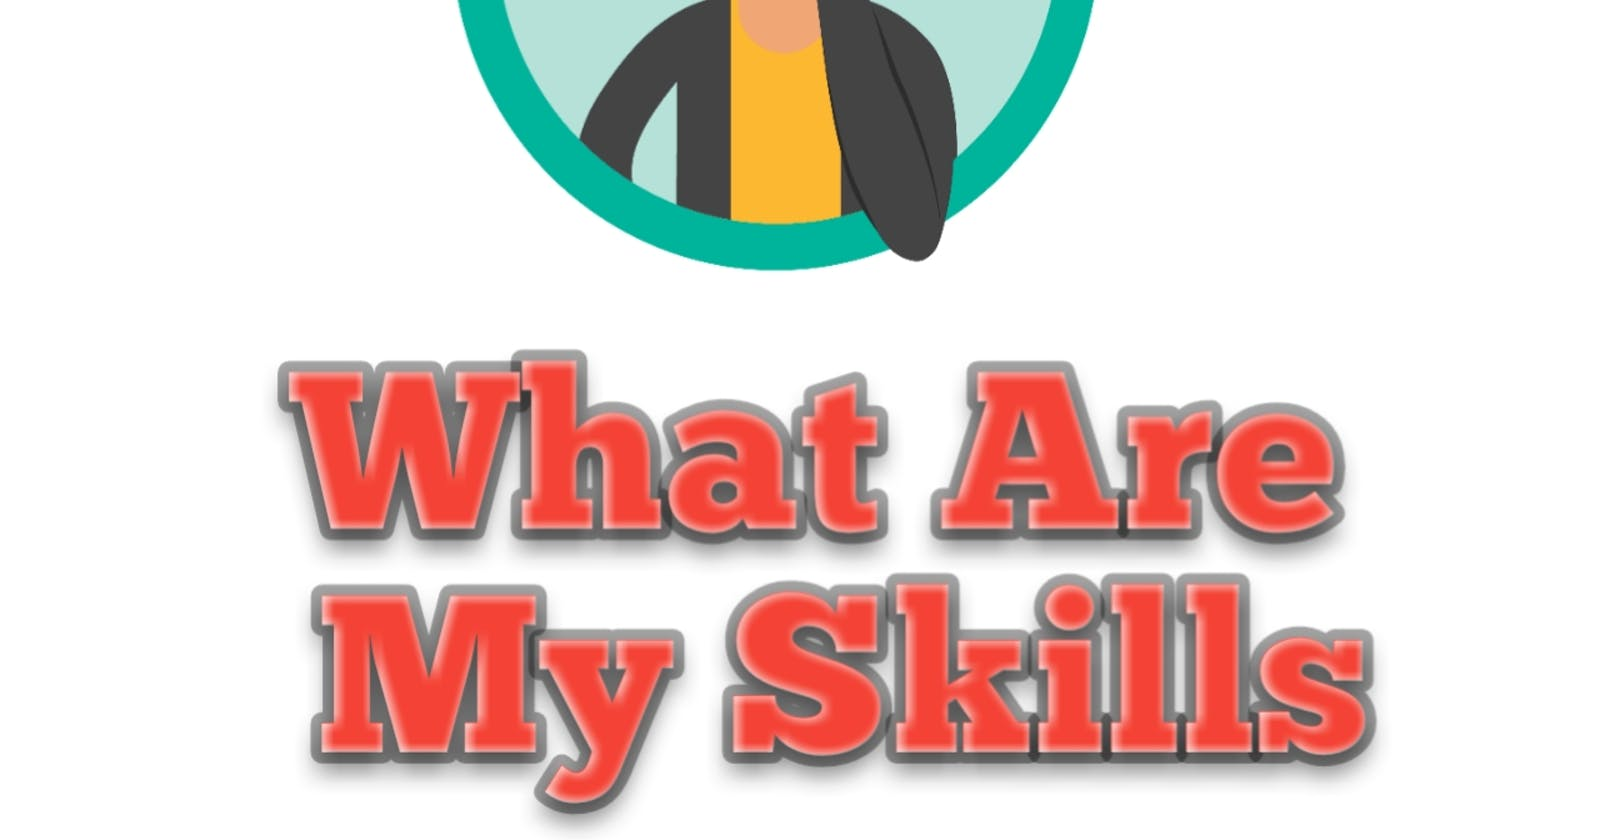 What Skills Should Matter to a Developer - Part One